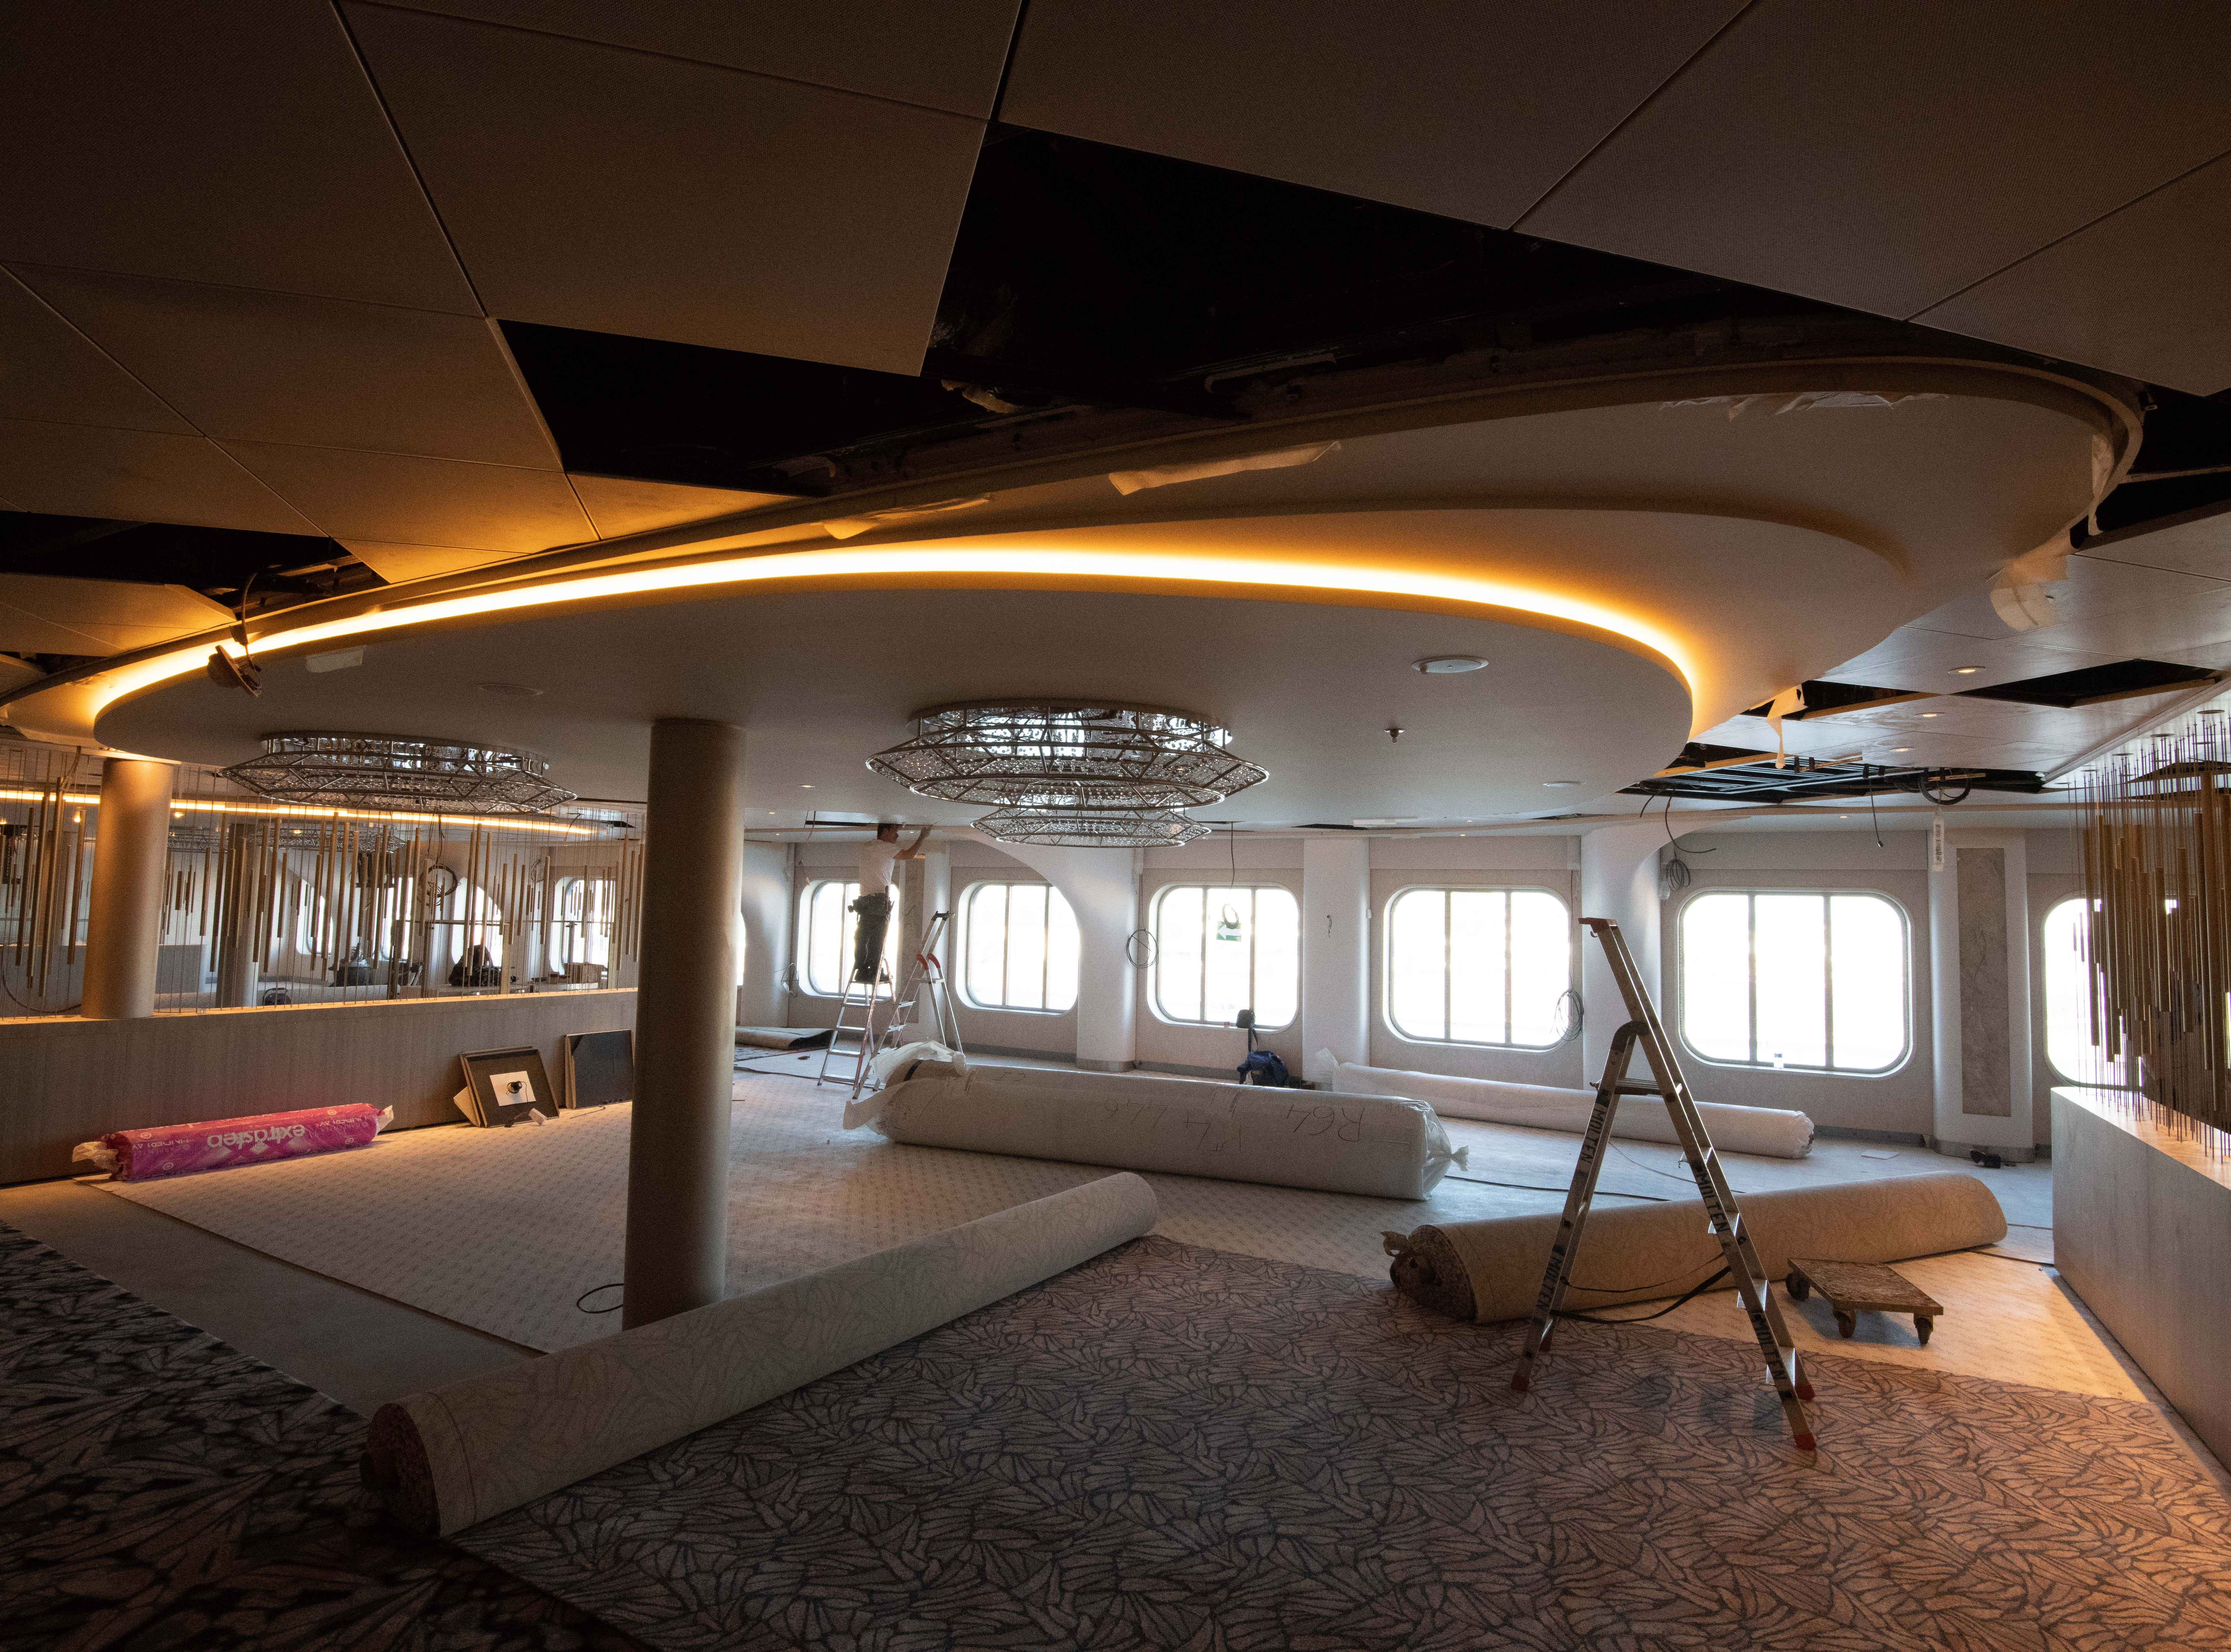 The Cosmopolitan Restaurant on Celebrity Edge takes shape during construction at the Chantiers de l'Atlantique shipyard in St. Nazaire, France.